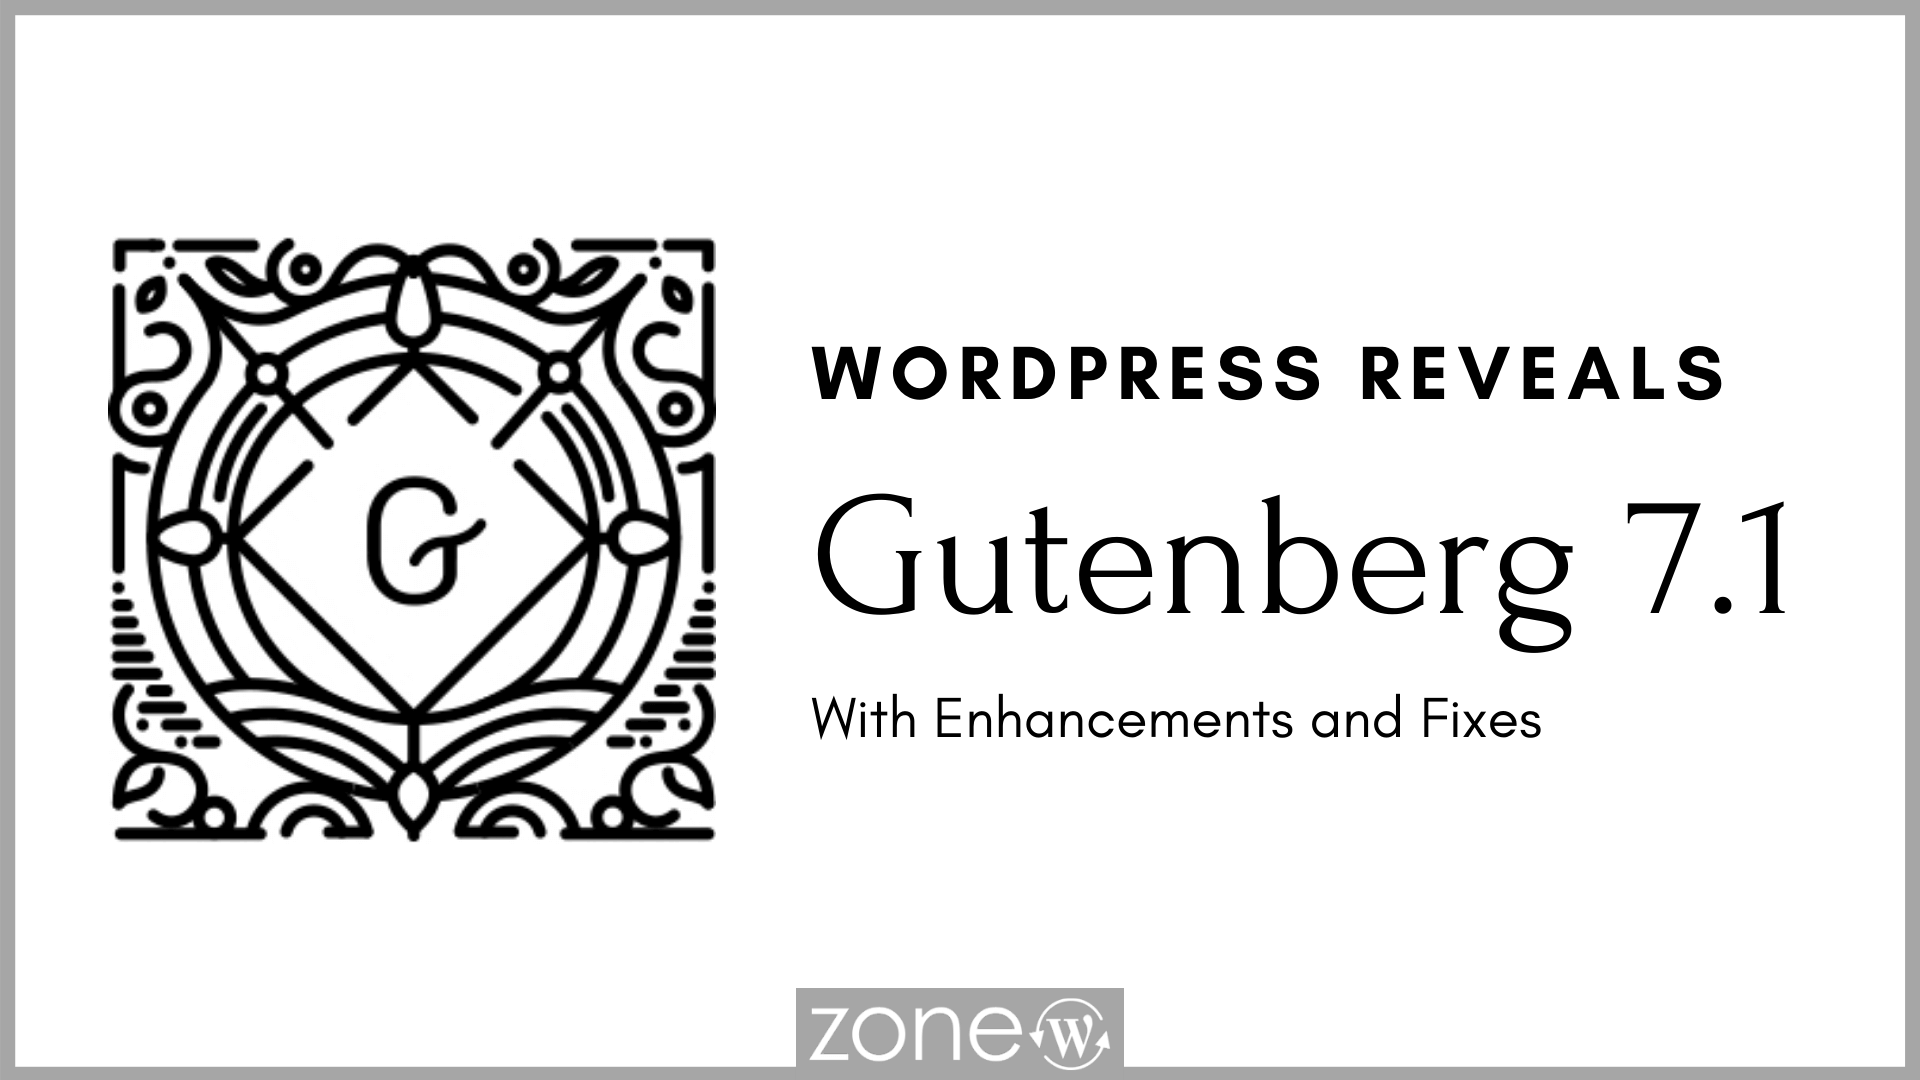 WordPress Reveals Gutenberg 7.1 - Features and Updates